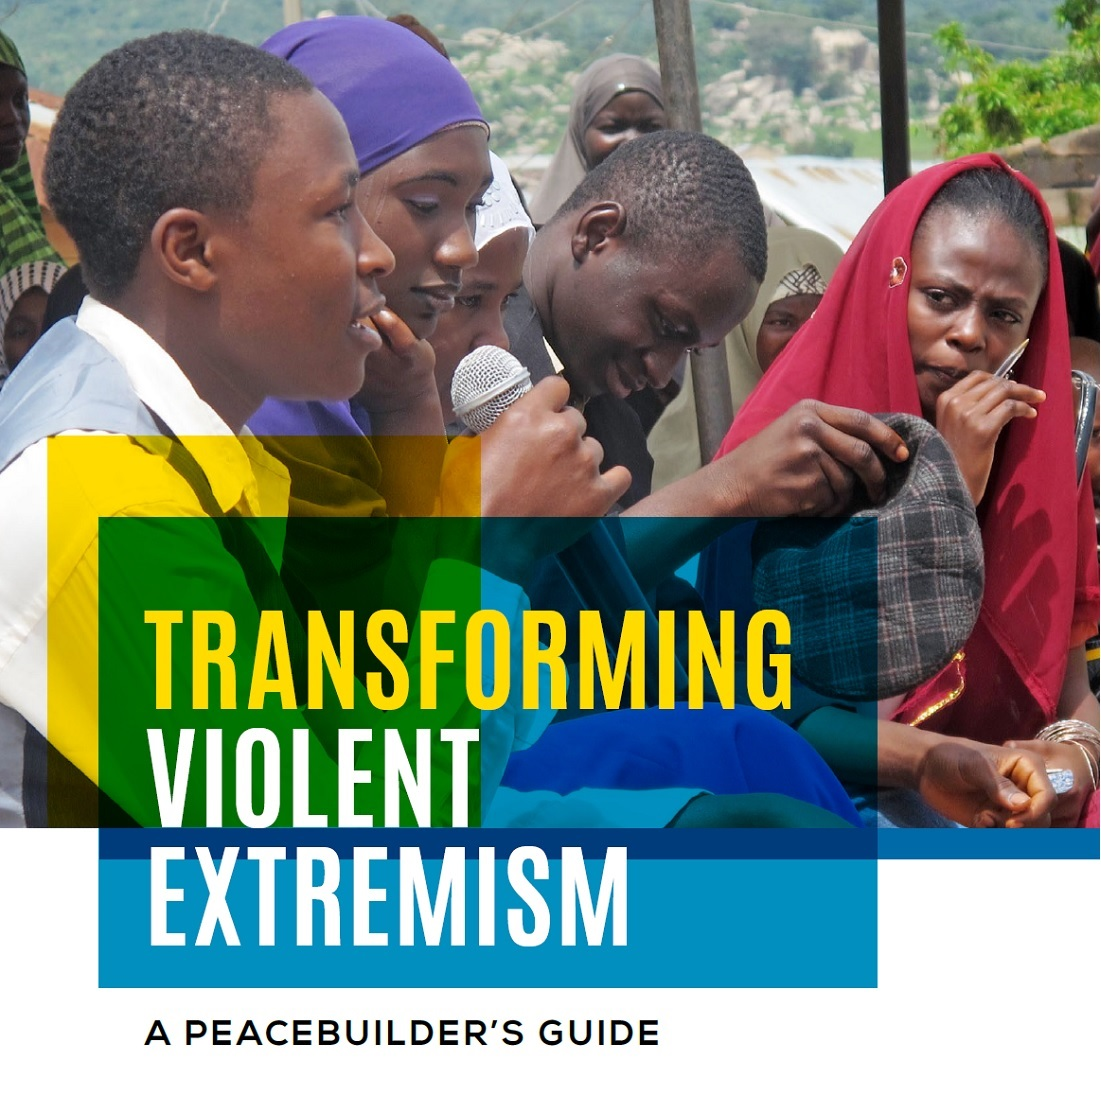 2017.04.14 - Transforming Violent Extremism - A Peacebuilder's Guide (SfCG)